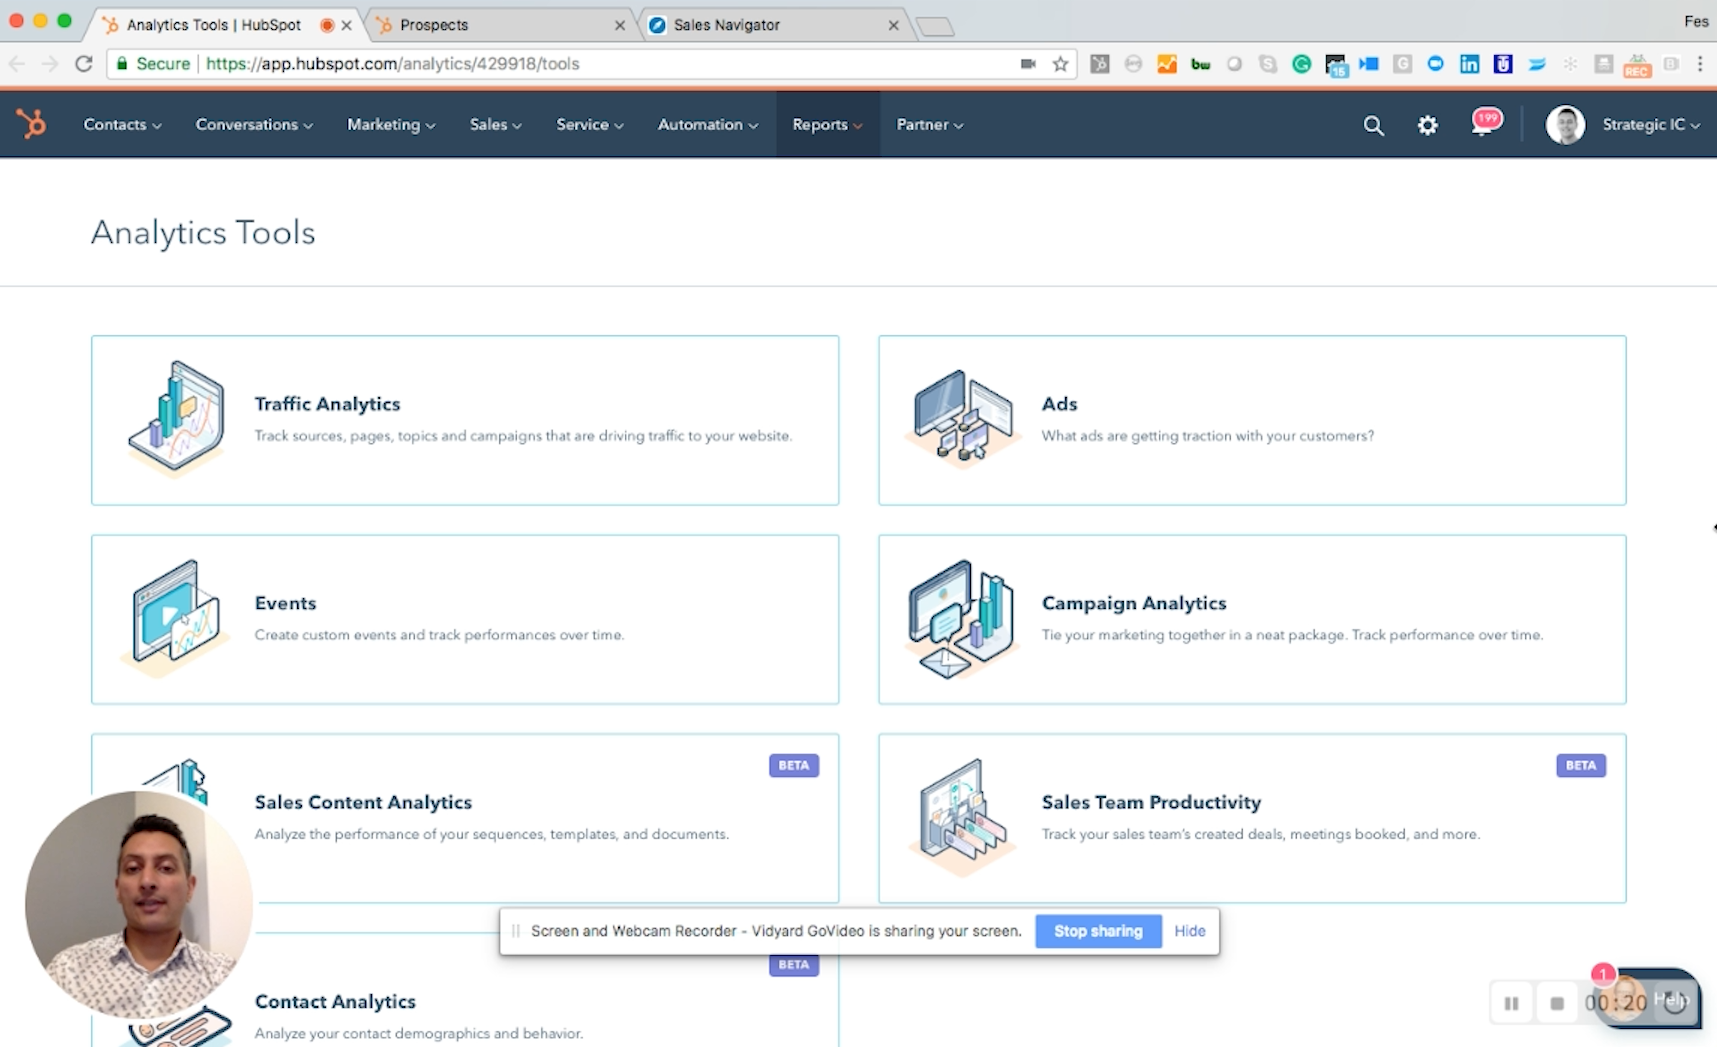 HubSpot Analytics Tool Suite